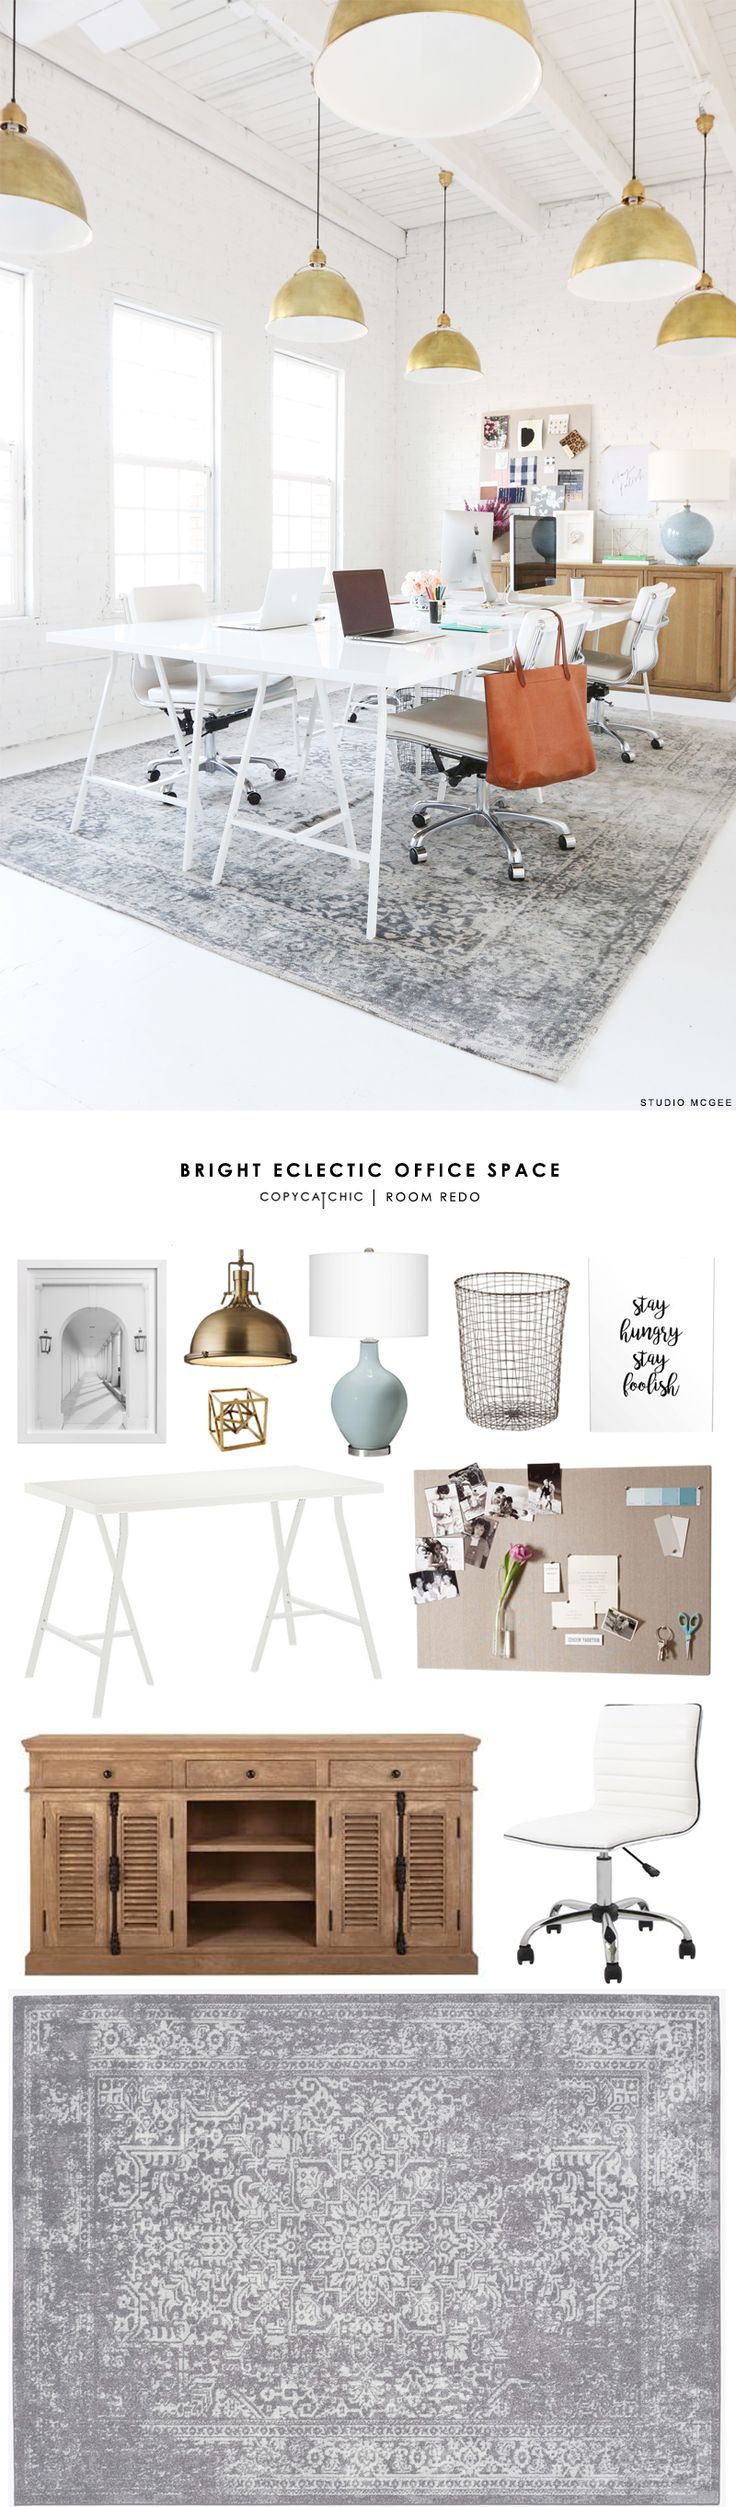 Copy Cat Chic Room Redo | Bright Eclectic Office Space